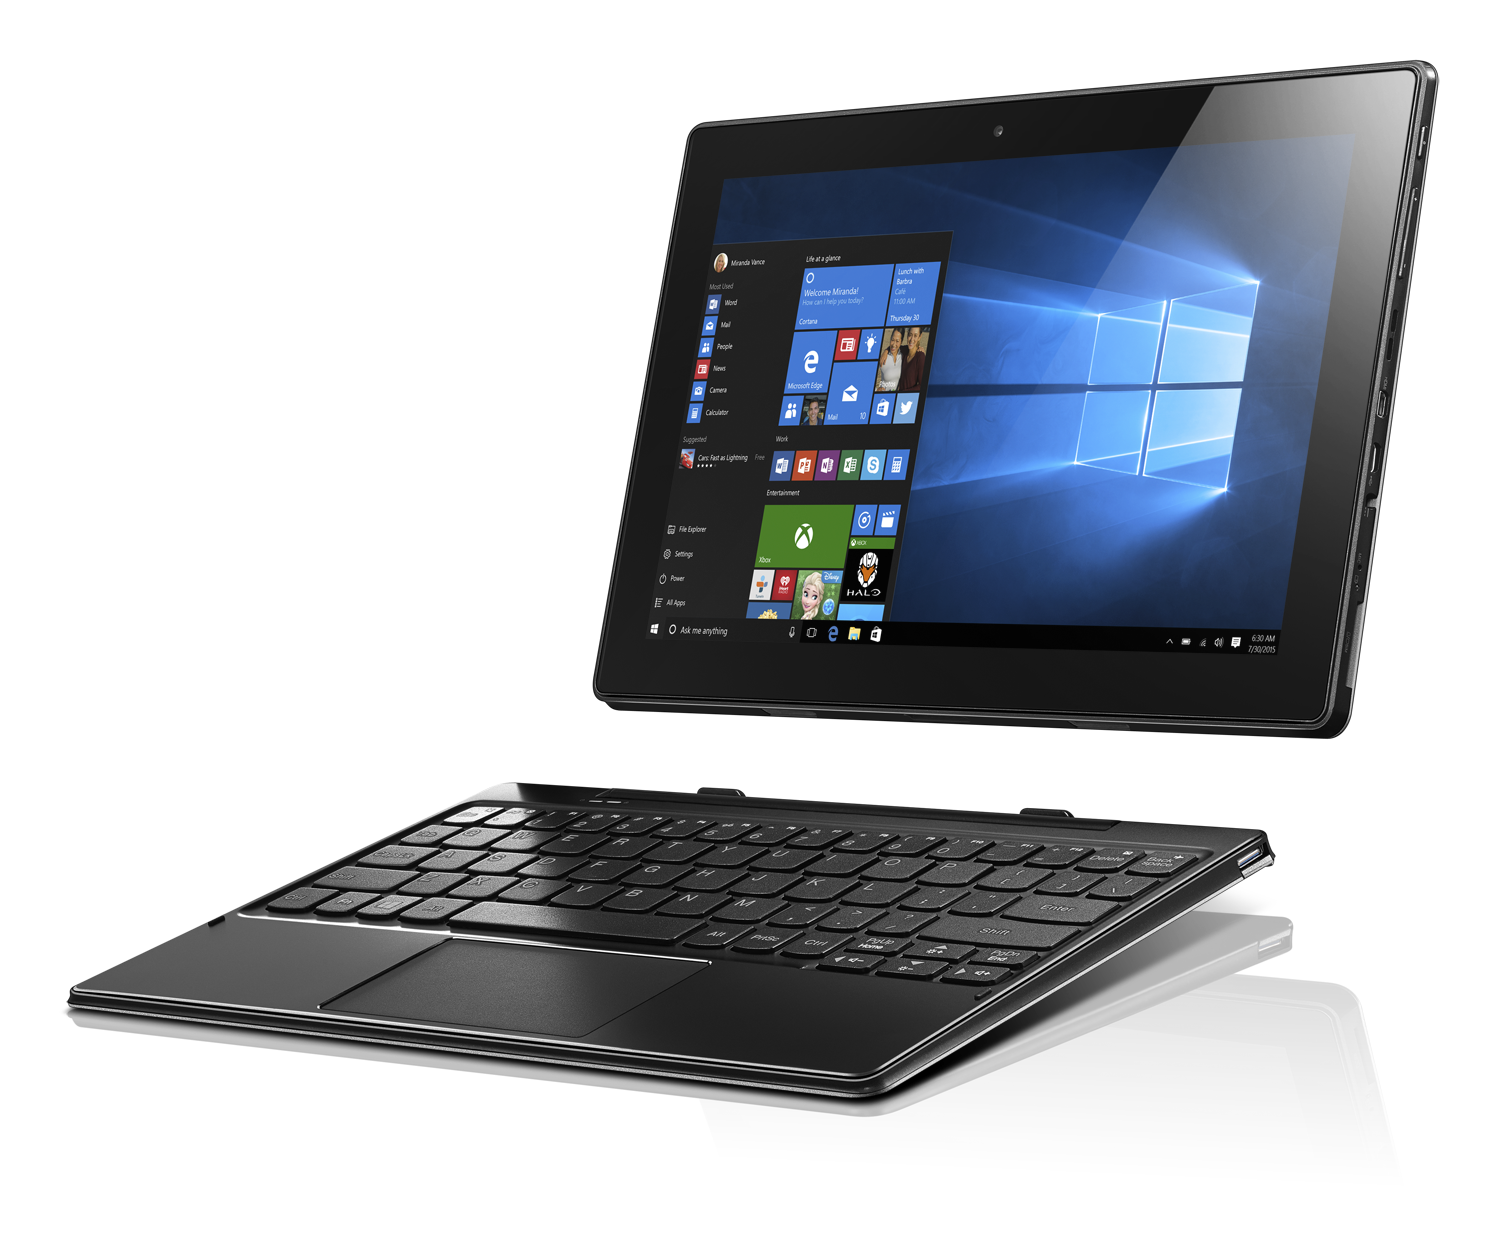 Lenovo announces new Windows 10 laptops, Android tablets and